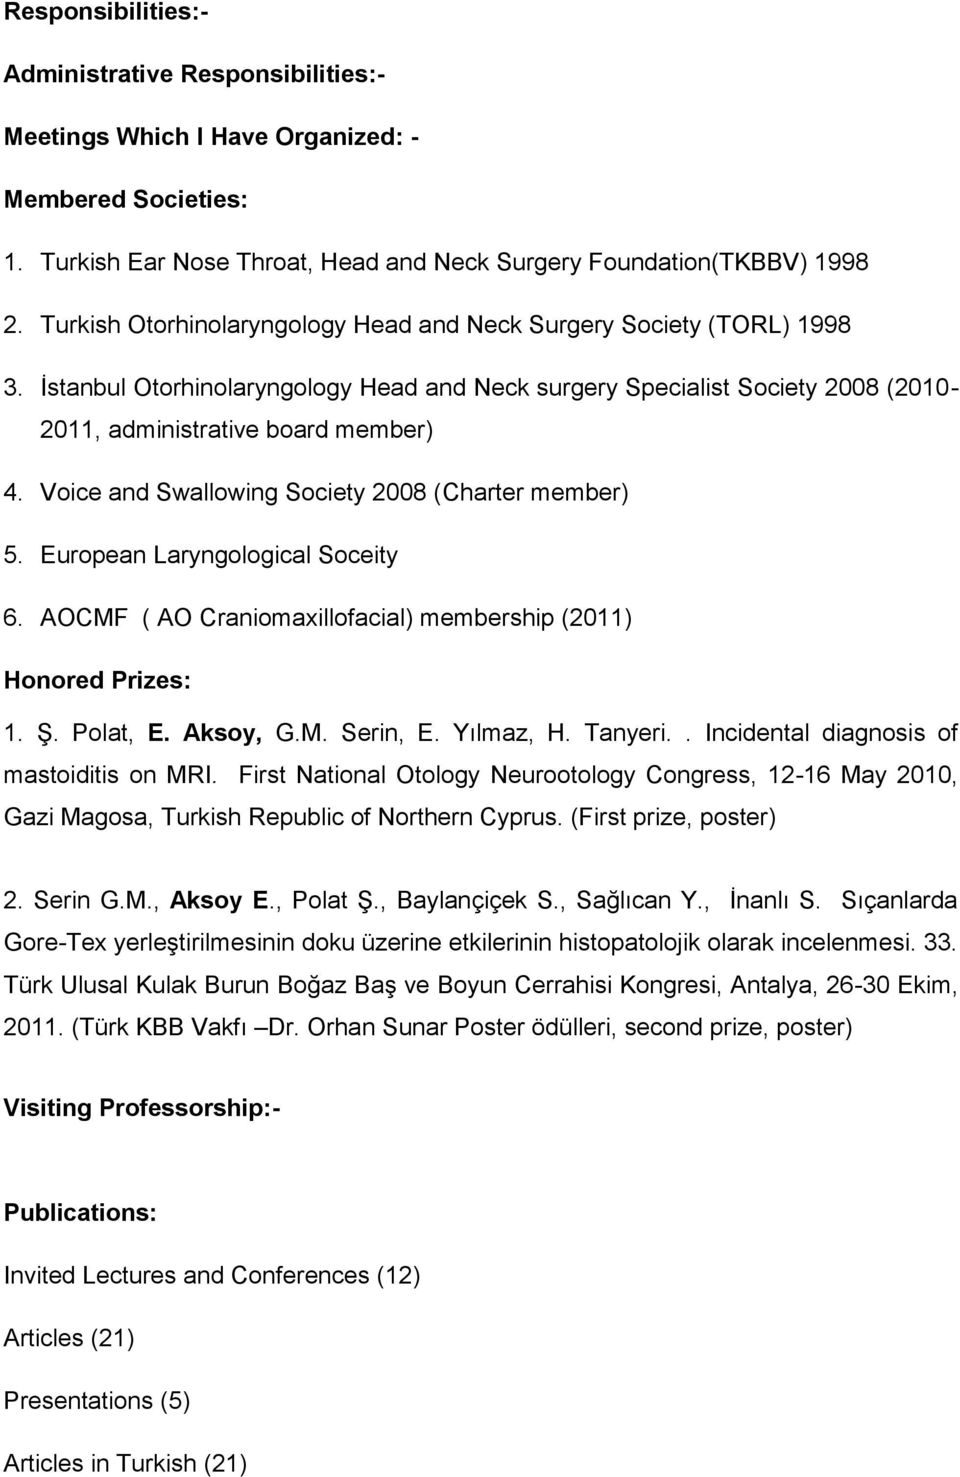 Voice and Swallowing Society 2008 (Charter member) 5. European Laryngological Soceity 6. AOCMF ( AO Craniomaxillofacial) membership (2011) Honored Prizes: 1. Ş. Polat, E. Aksoy, G.M. Serin, E.